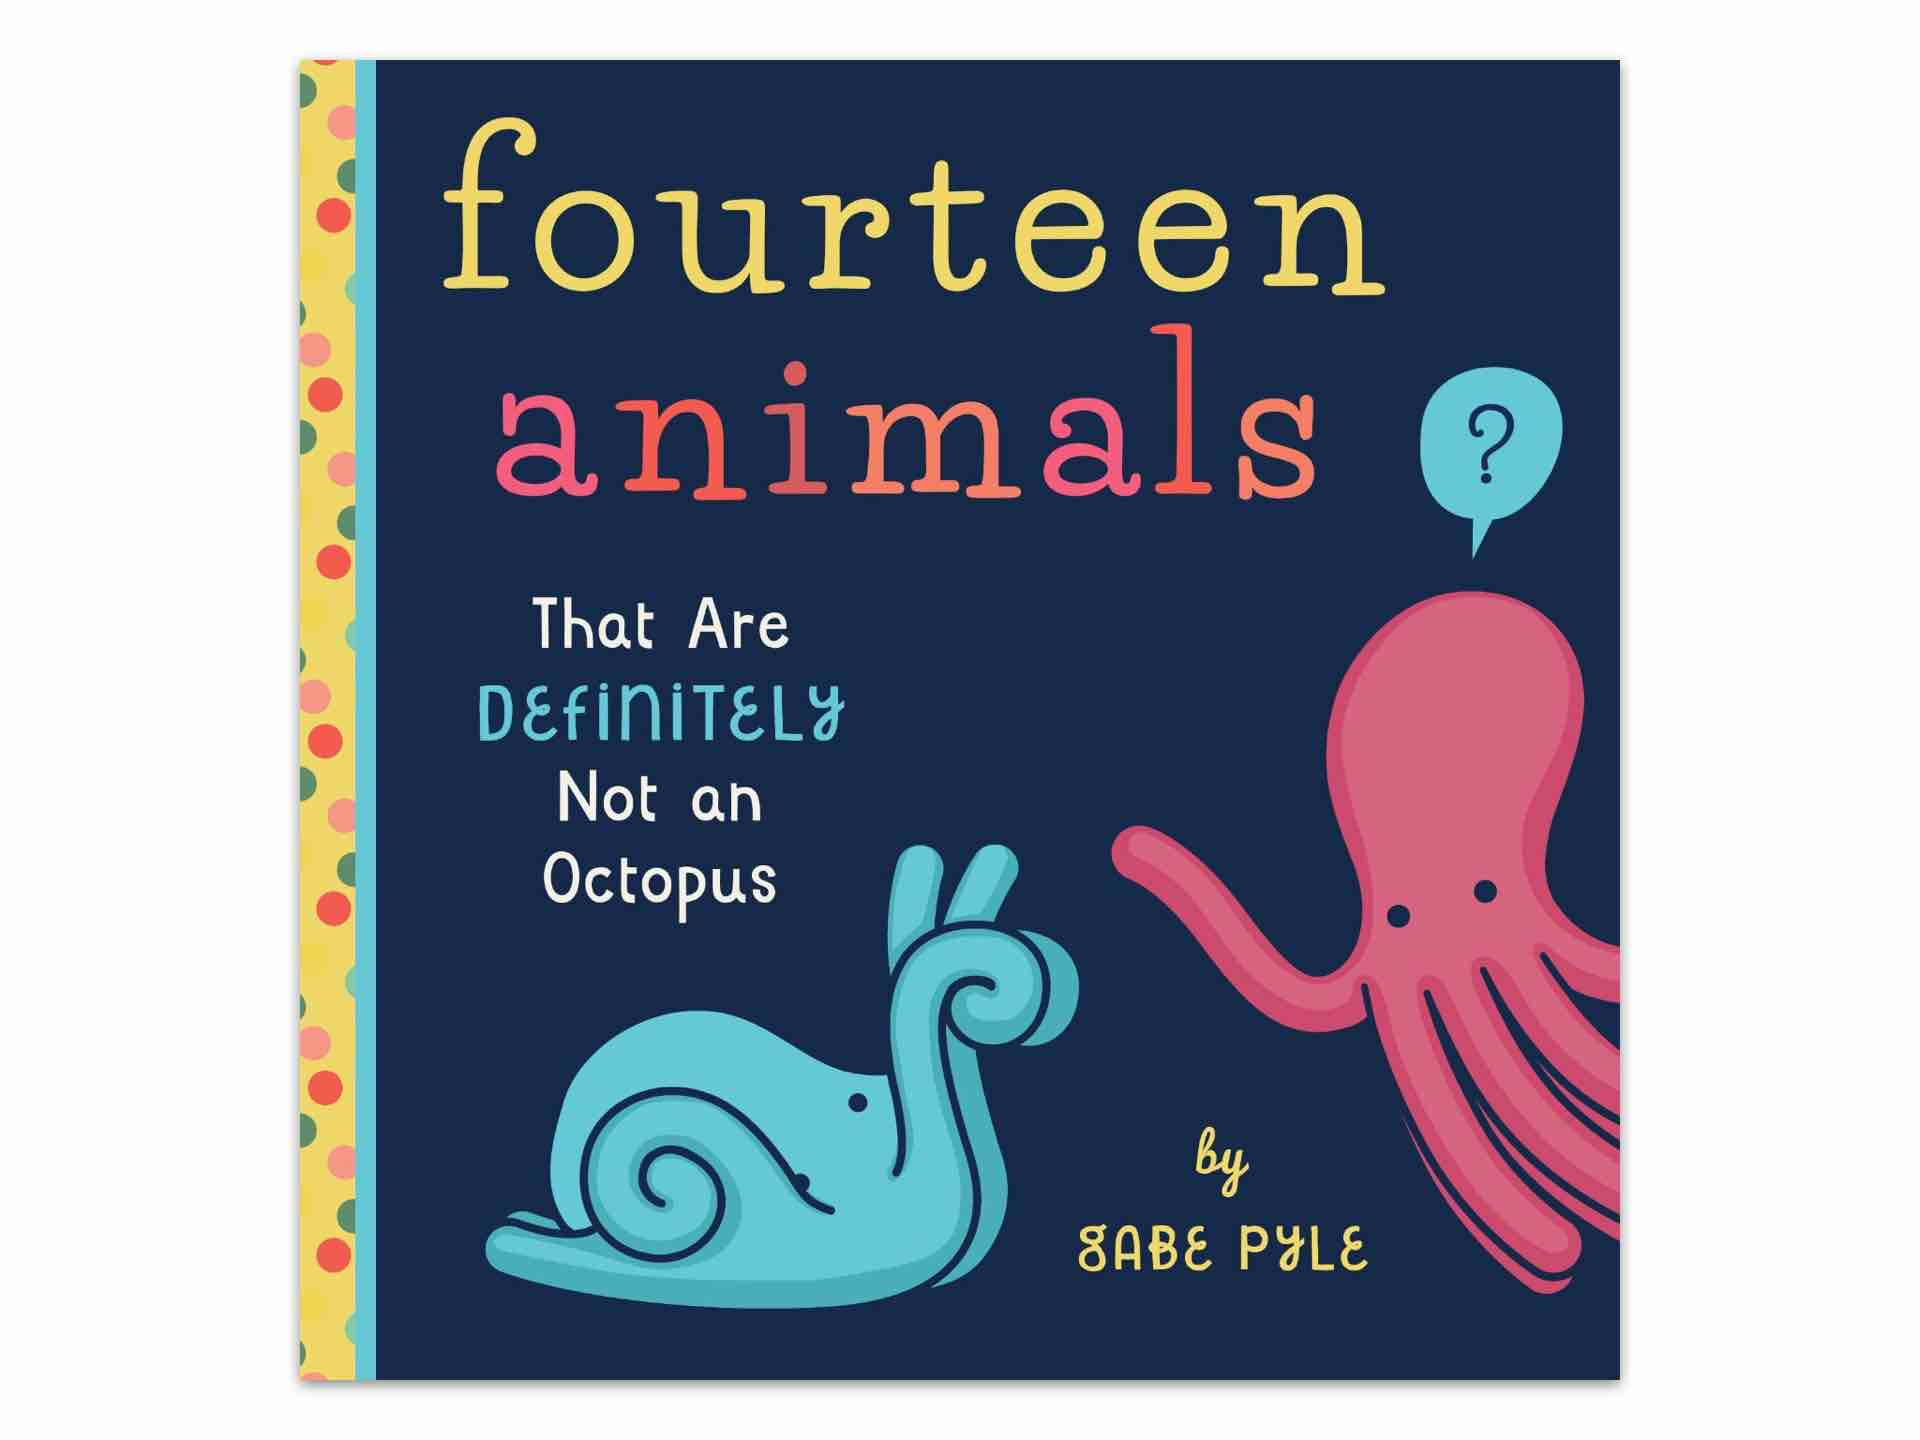 fourteen-animals-that-are-definitely-not-an-octopus-board-book-by-gabe-pyle